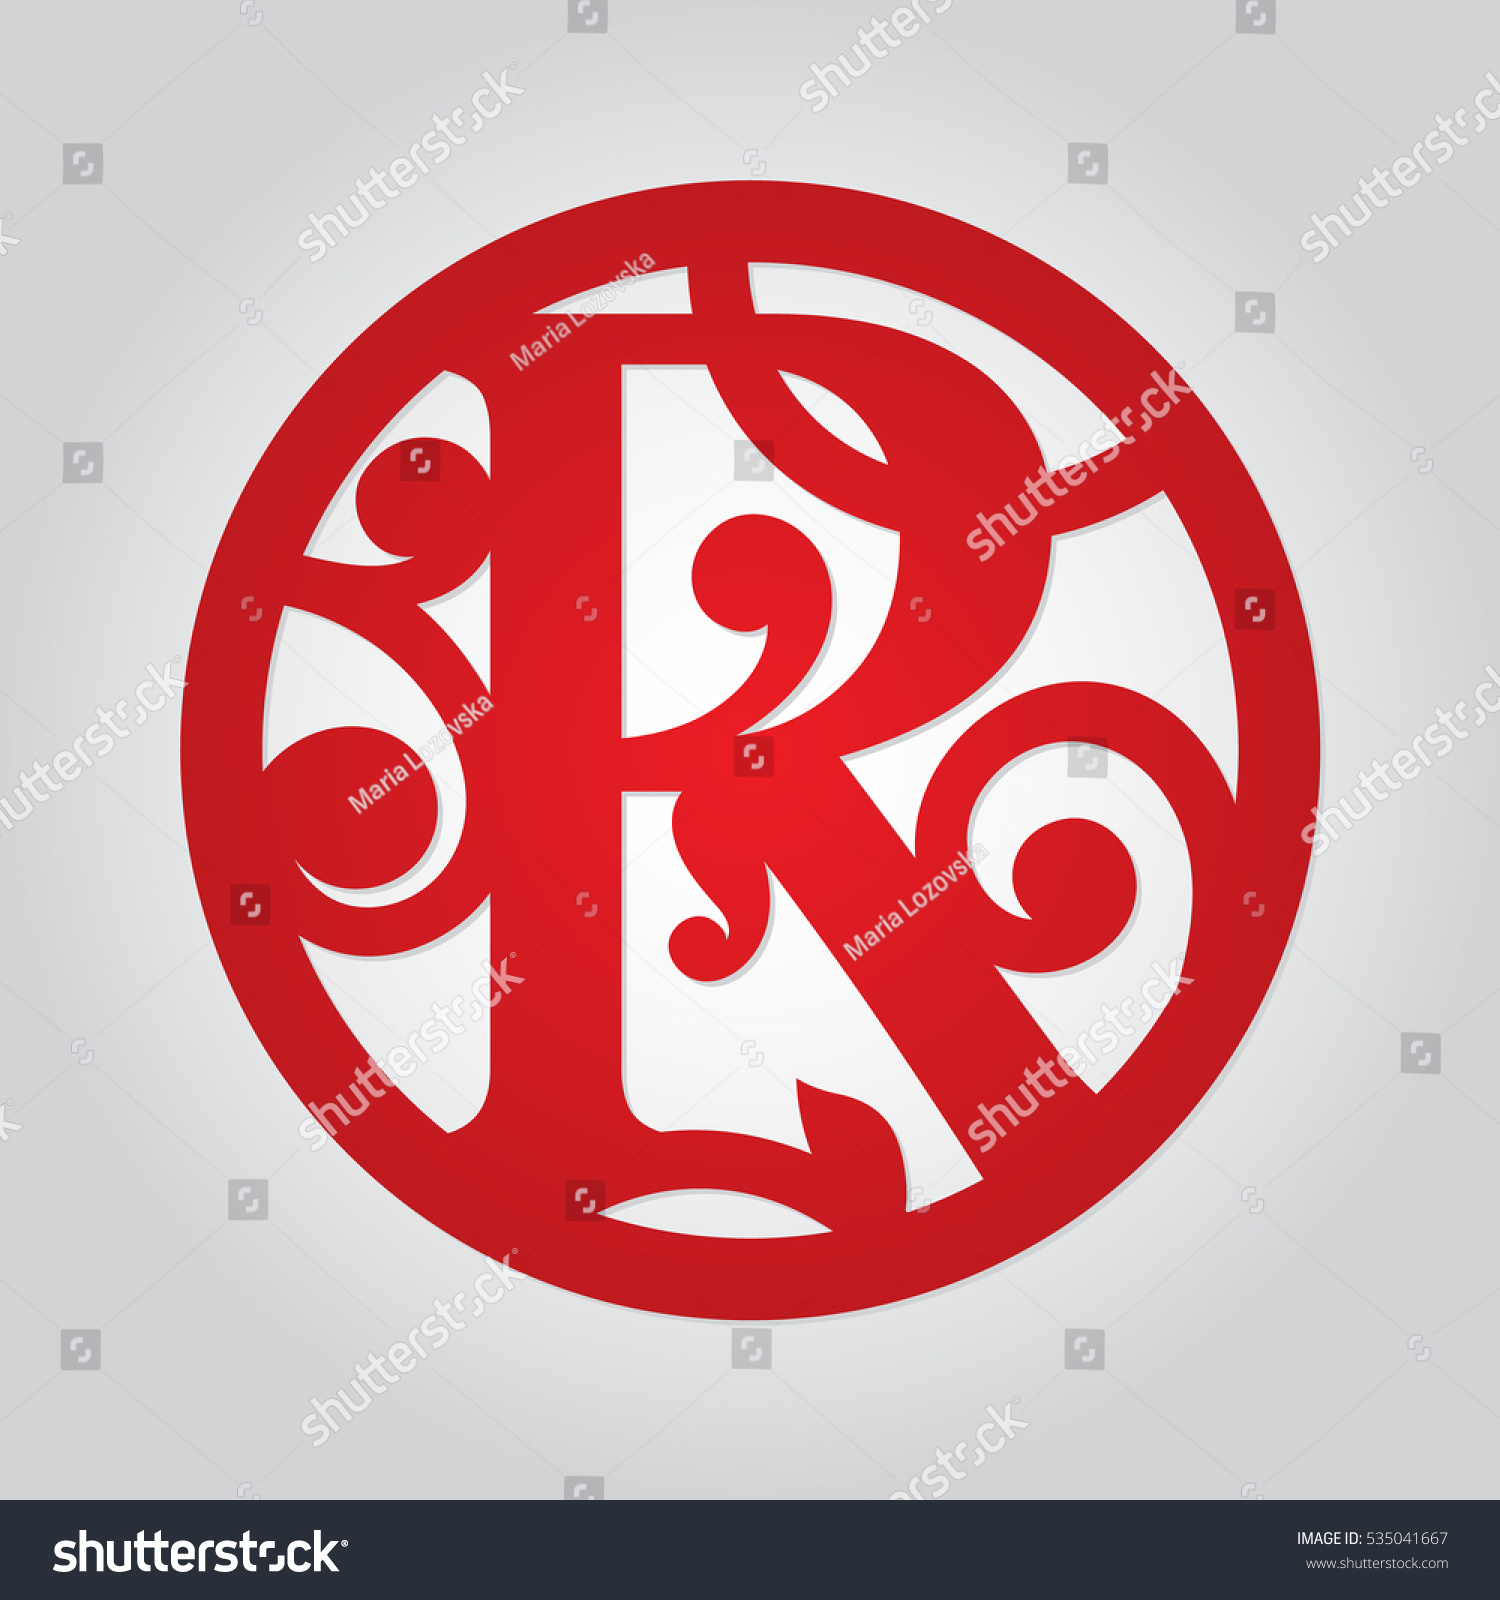 Monogrammed Font Letter Circle Laser Cutting Stock Photo Photo